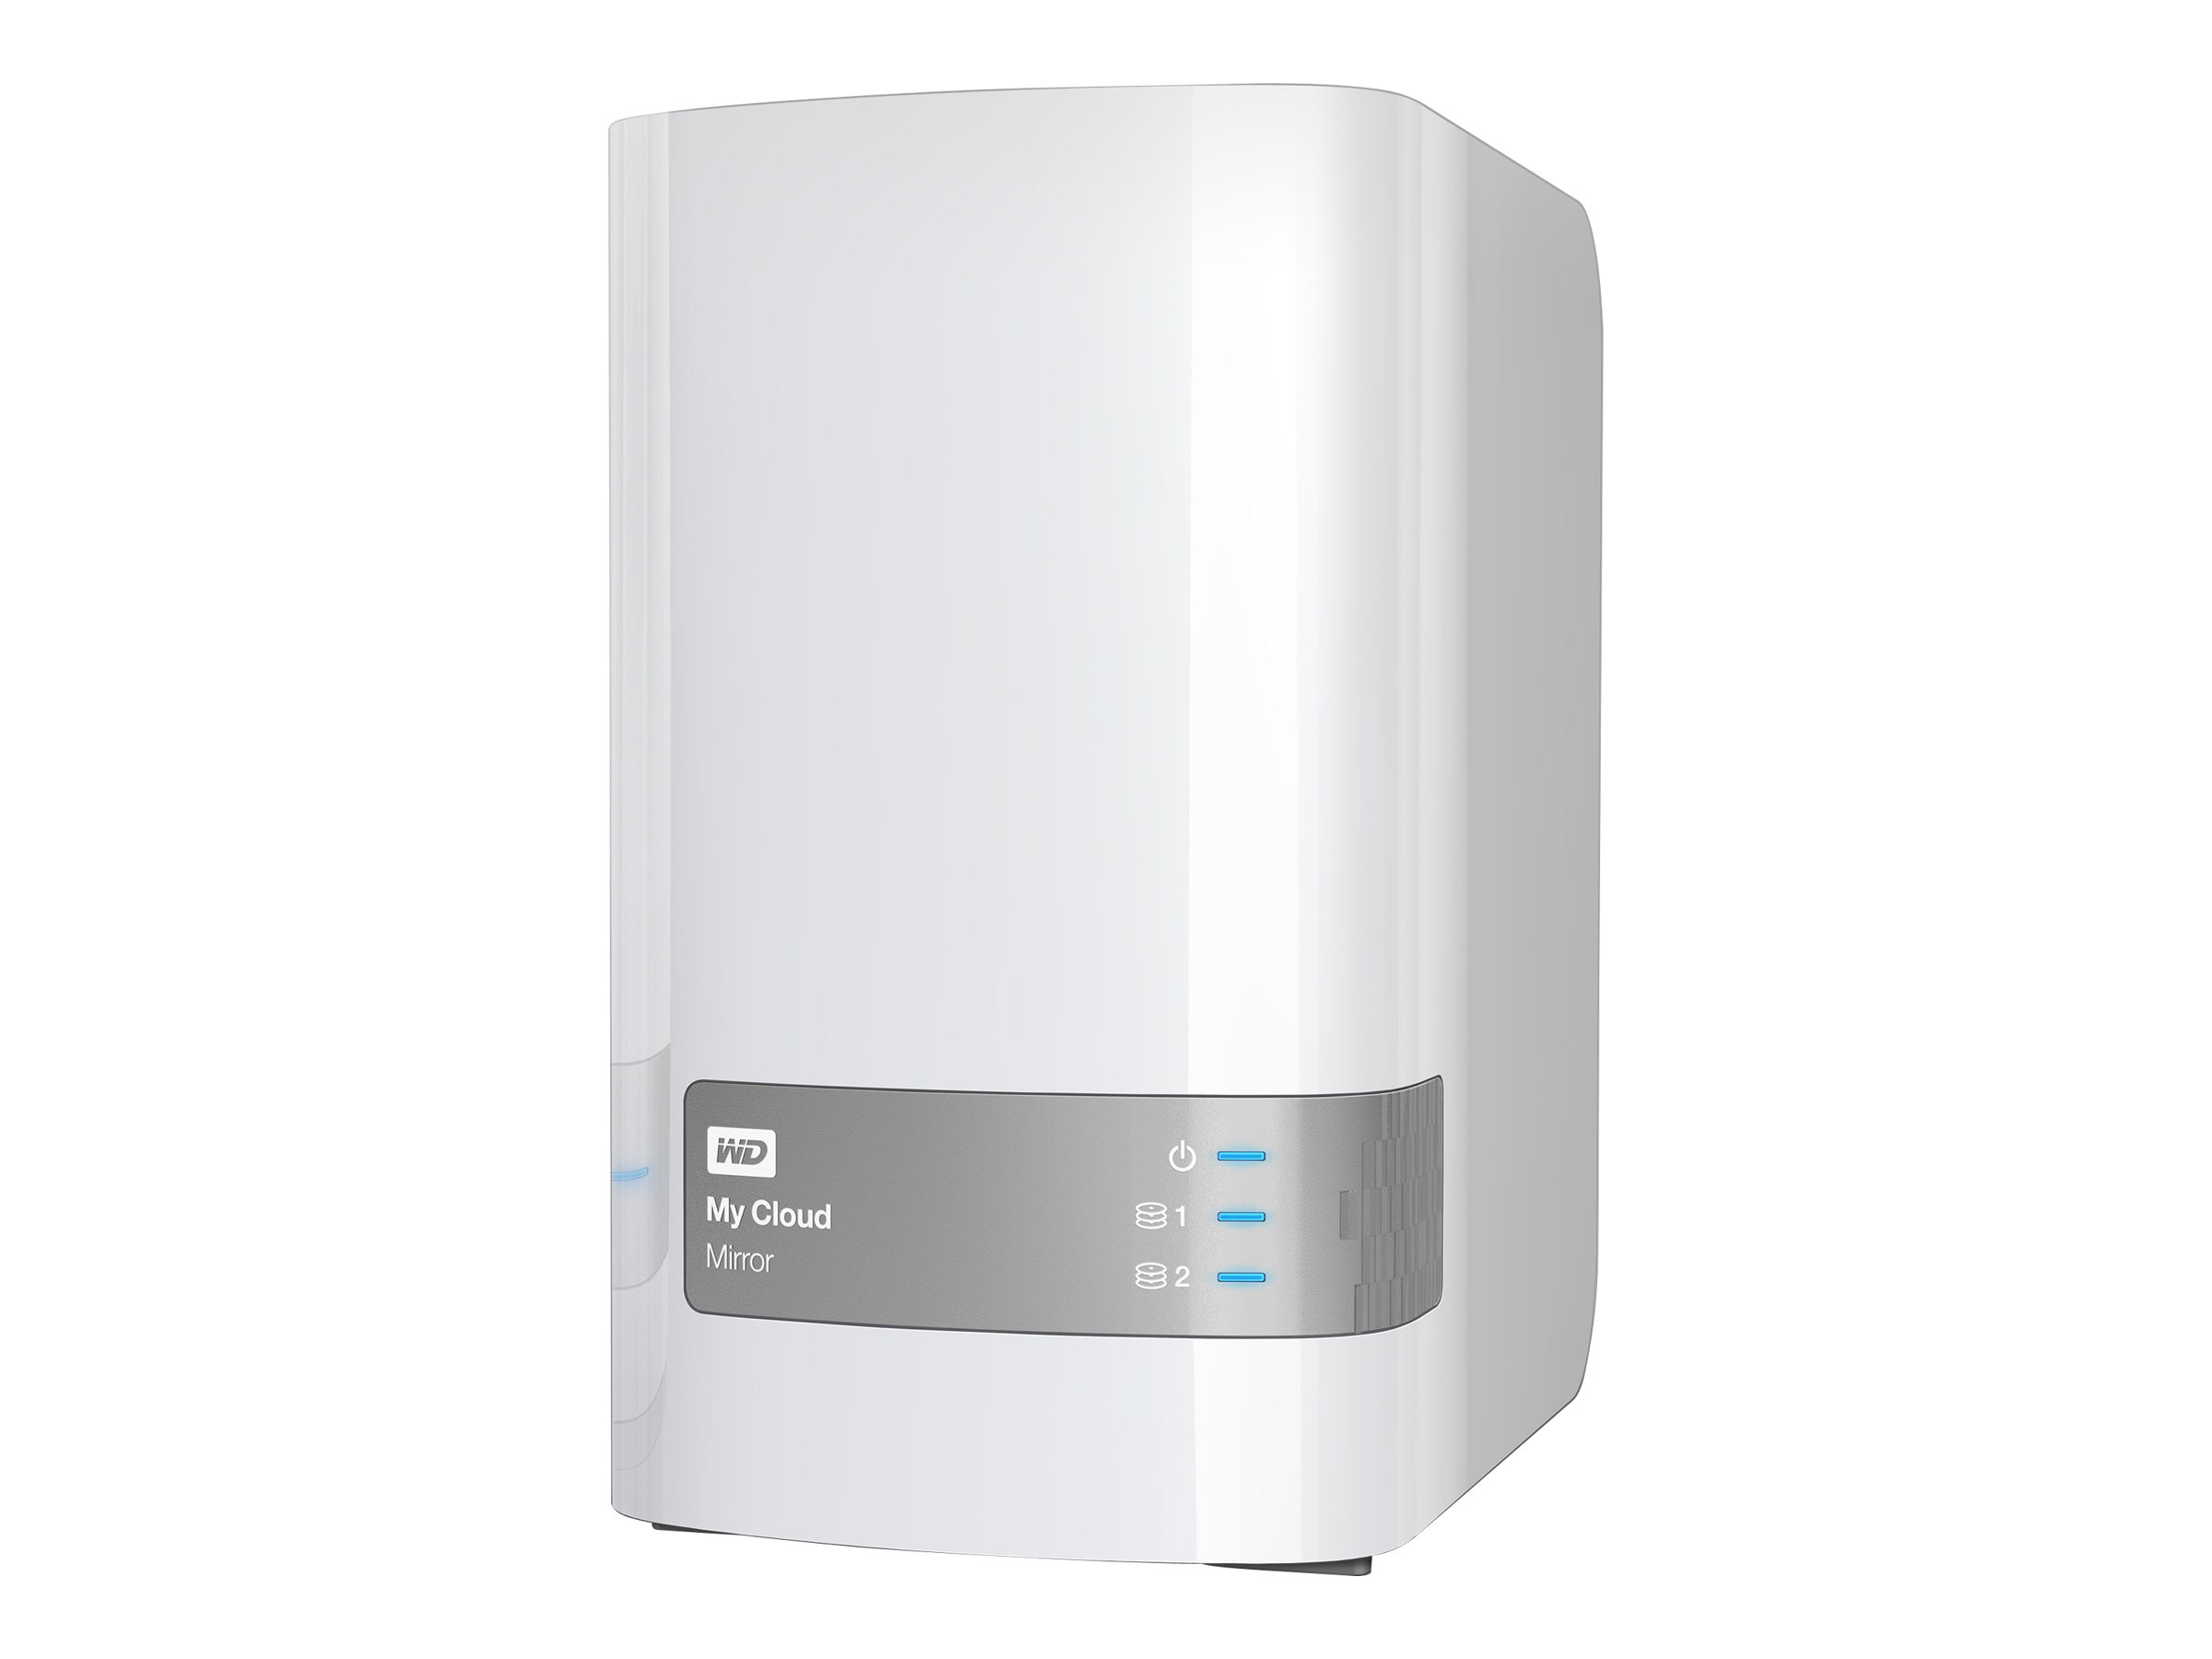 WD 12TB My Cloud Mirror Personal Cloud Storage, WDBZVM0120JWT-NESN, 17841826, Network Attached Storage